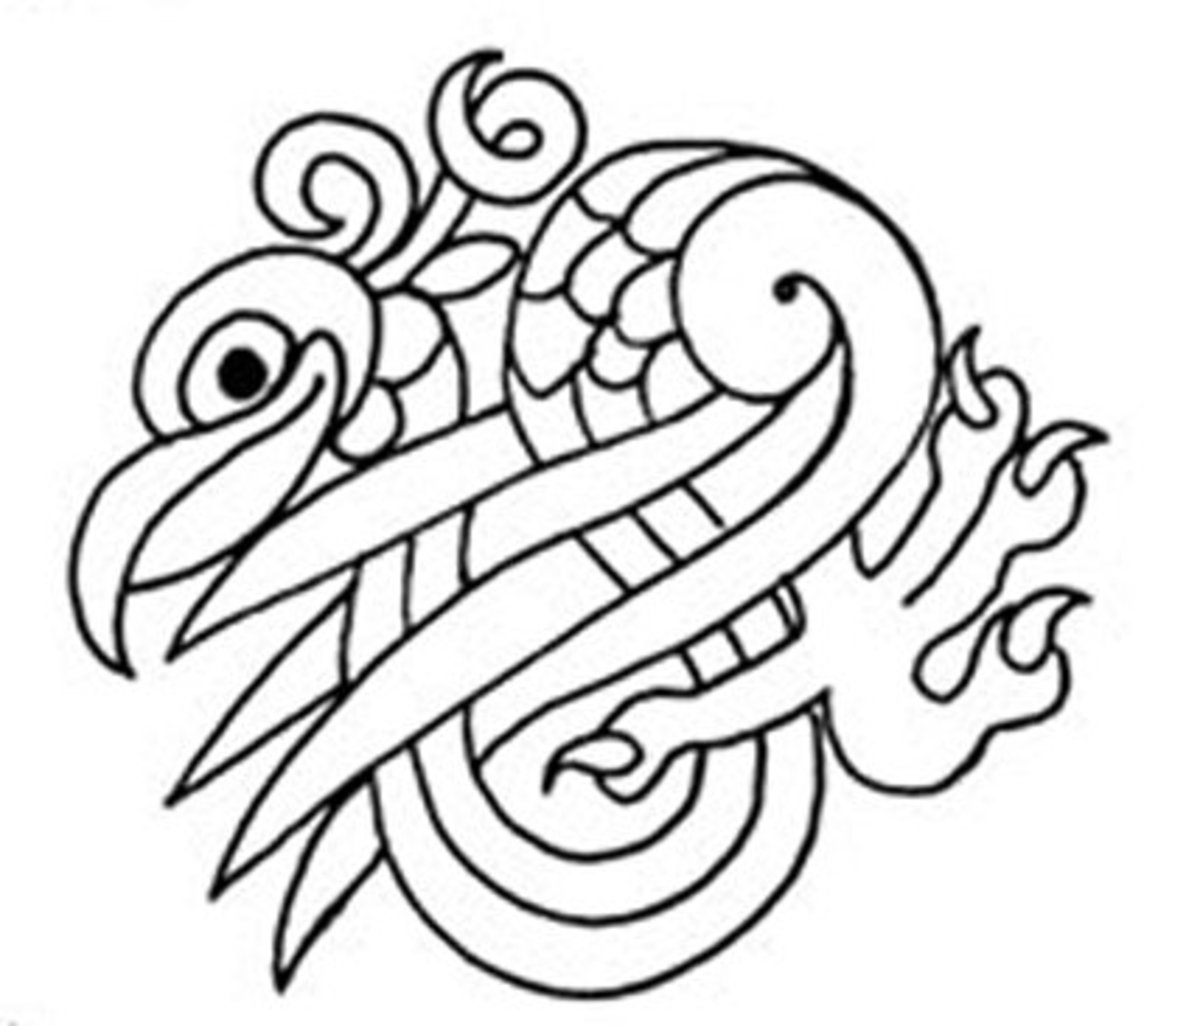 Celtic Design Art Coloring Pages for Kids Colouring Pictures to Print - Regal Bird